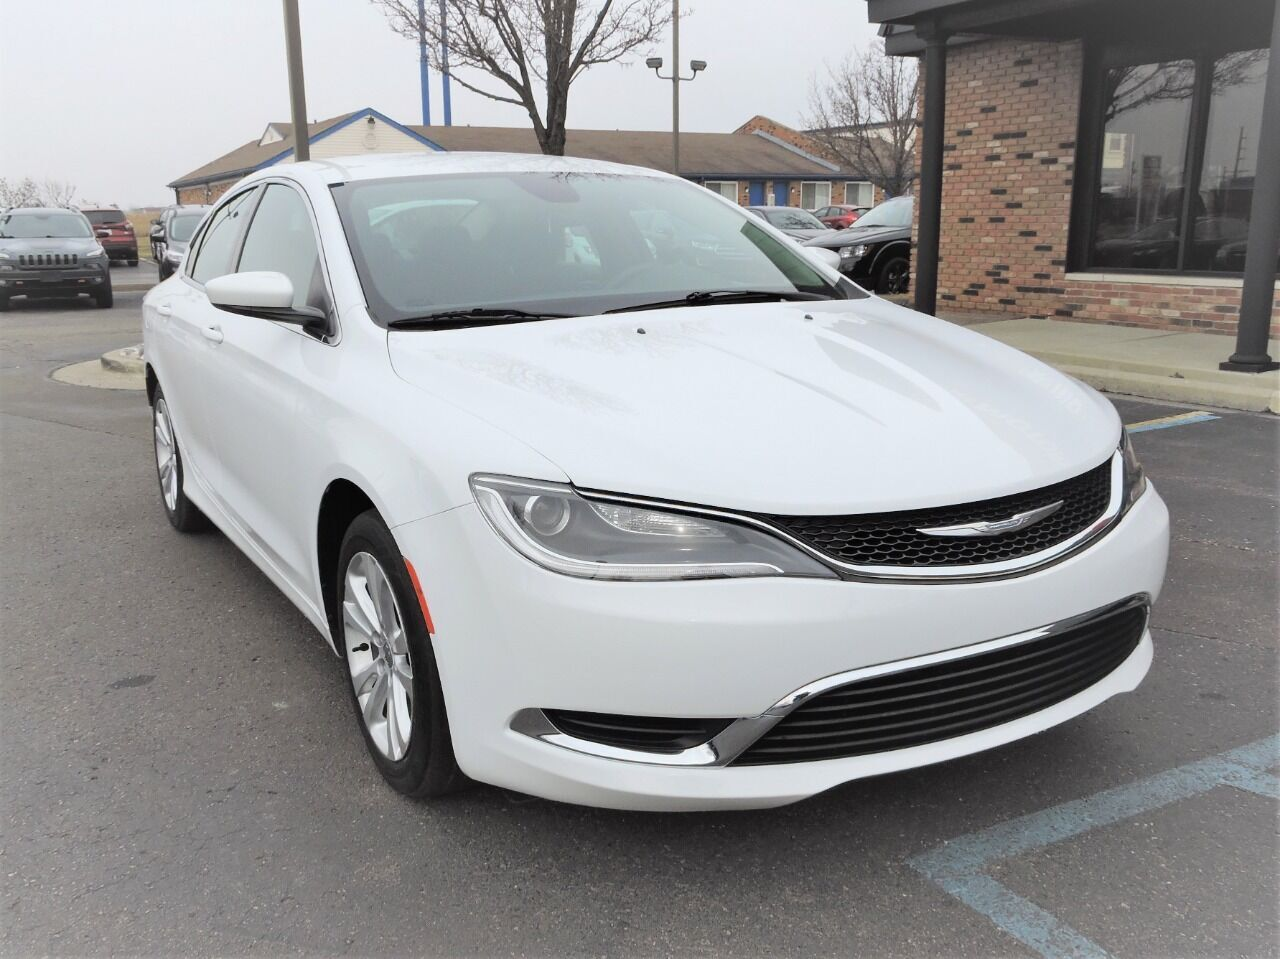 2015 Chrysler 200 Limited 4dr Sedan Chesterfield MI